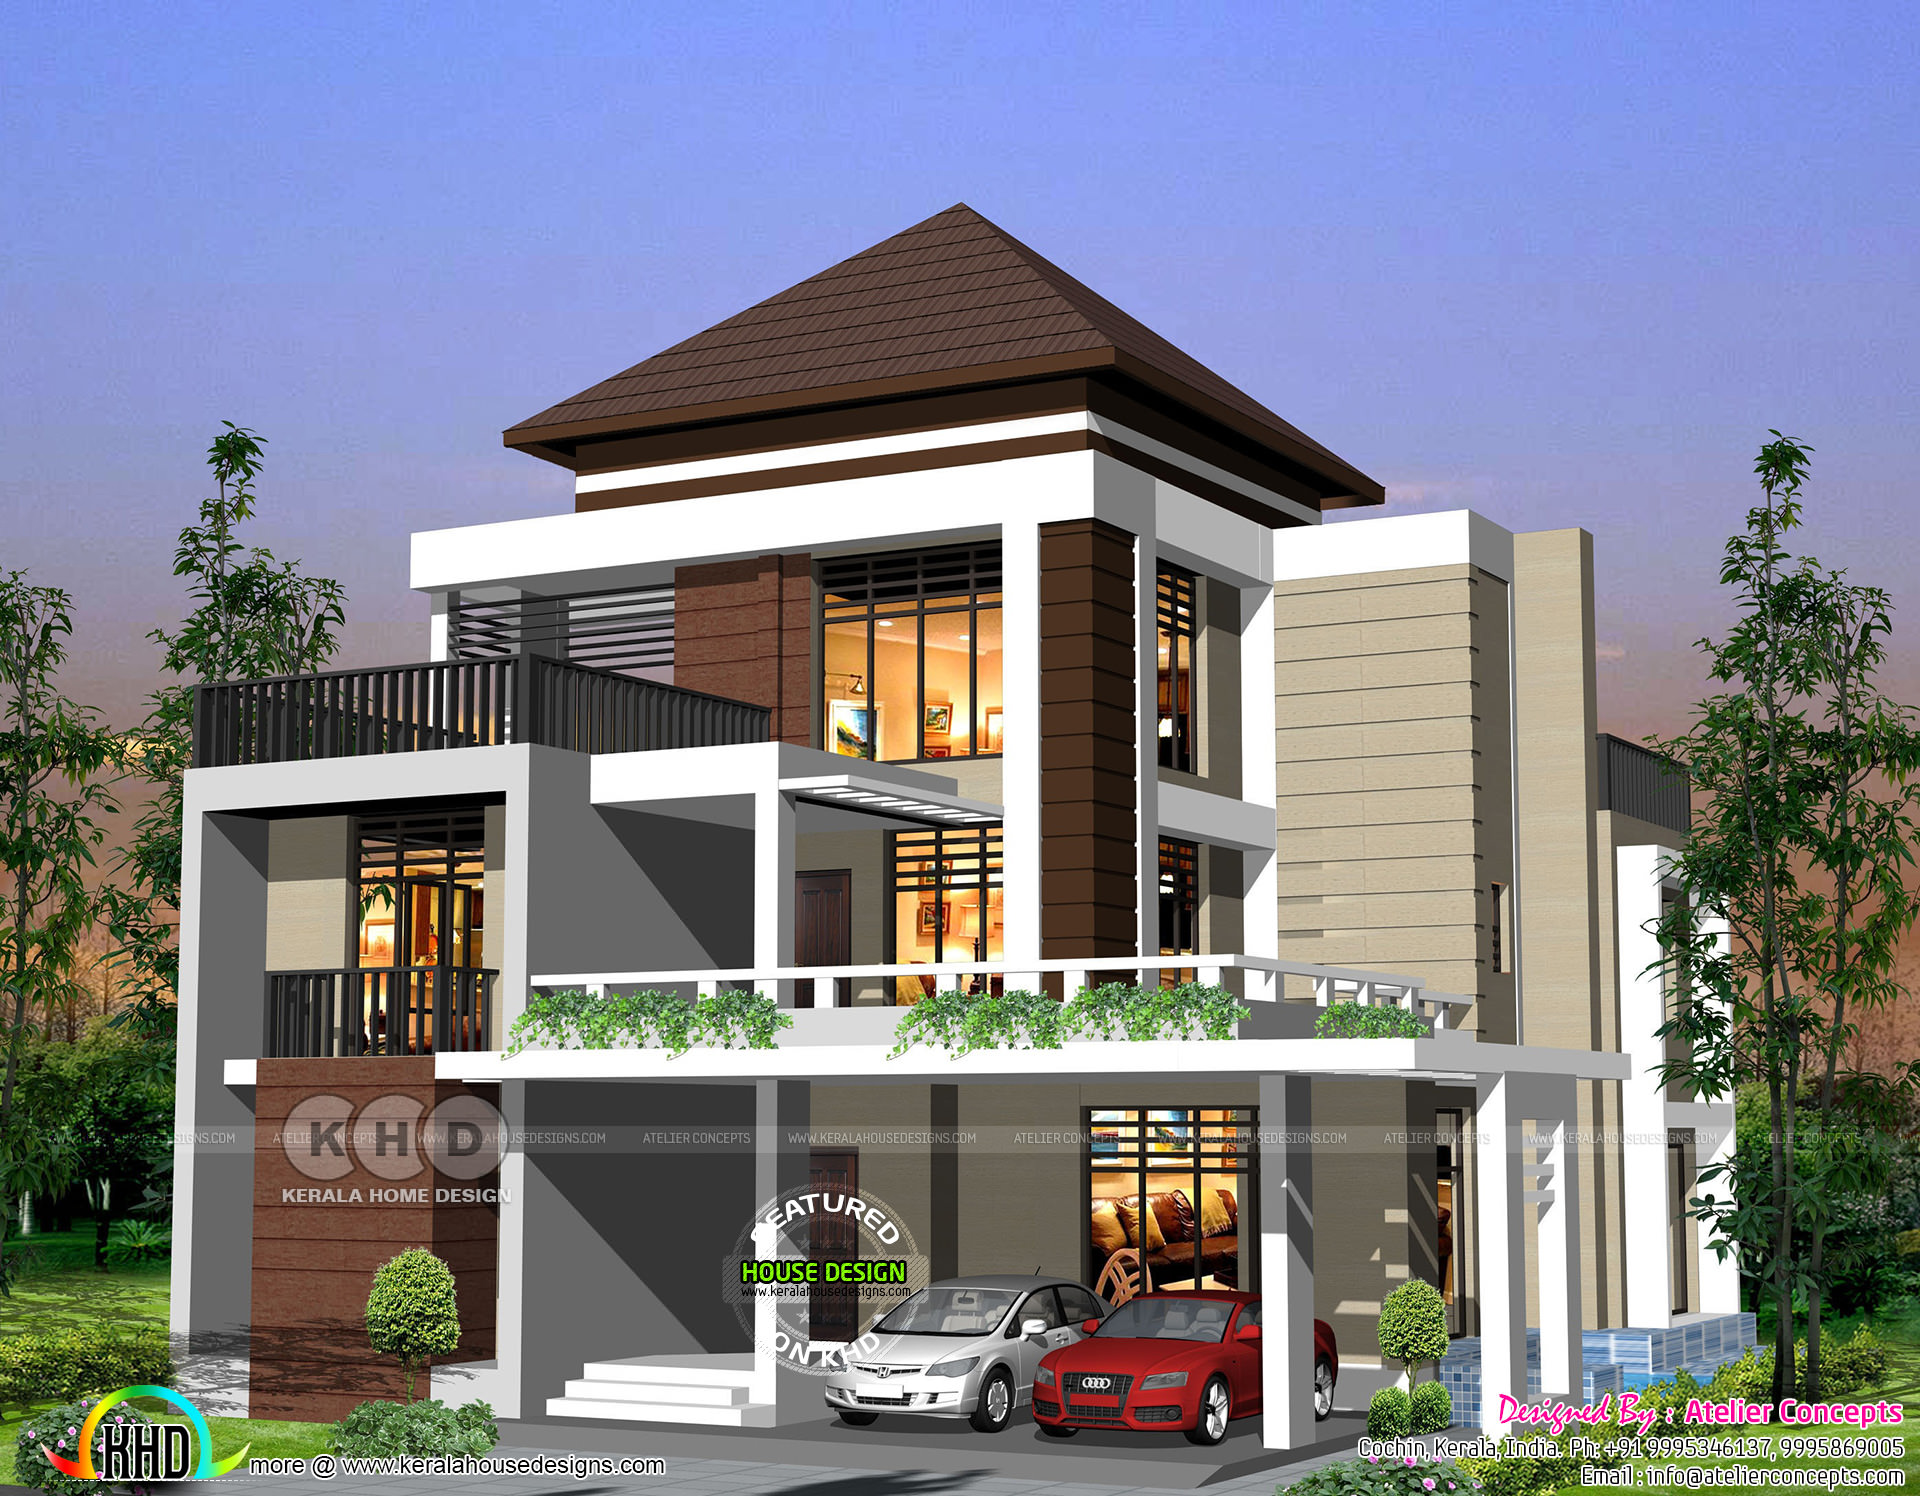 4 BHK Modern house plan 3300 square feet | Kerala home design ... Contemporary House Plans Sq Ft on 200 sq ft house plans, 720 sq ft house plans, 4000 sq ft house plans, 4800 sq ft house plans, 1150 sq ft house plans, 300 sq ft house plans, 400 sq ft house plans, 600 sq ft house plans, 1300 sq ft house plans, 1035 sq ft house plans, 3100 sq ft house plans, 900 sq ft house plans, 1800 sq ft house plans, 1148 sq ft house plans, 10000 sq ft house plans, 1200 sq ft house plans, 500 sq ft house plans, 30000 sq ft house plans, 832 sq ft house plans, 1000 sq ft house plans,